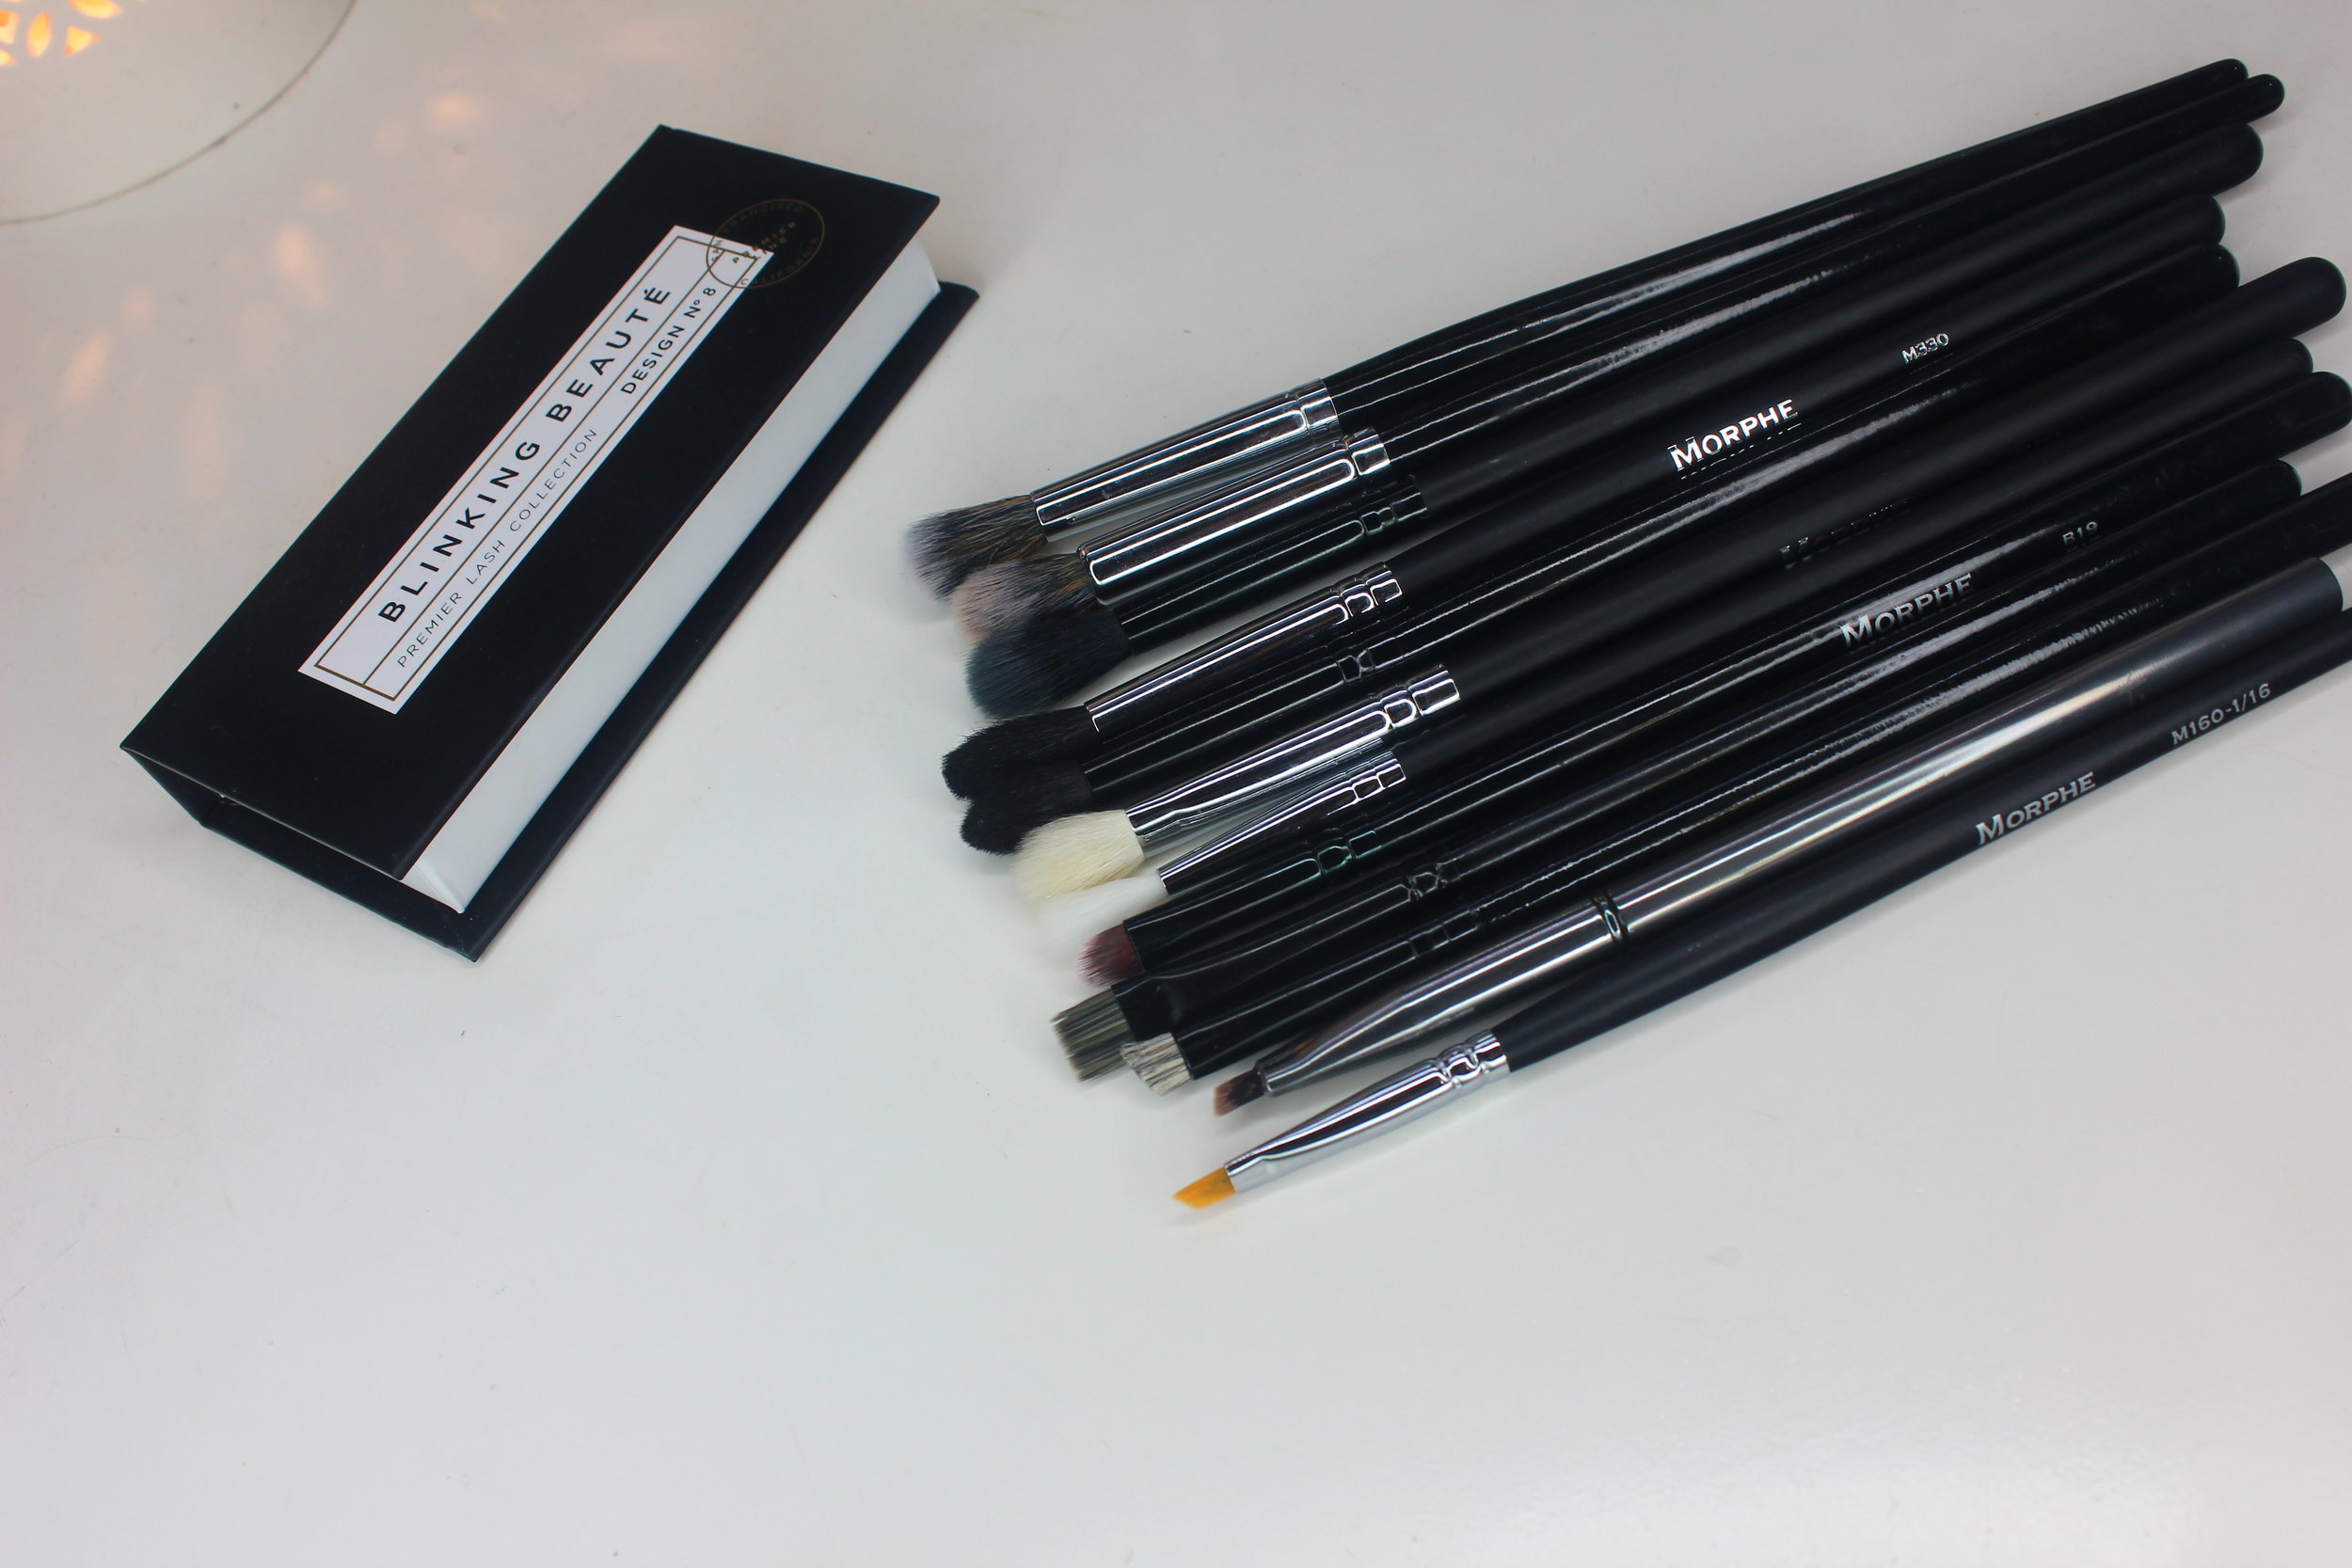 Morphe Brushes & Blinking Beaute Haul